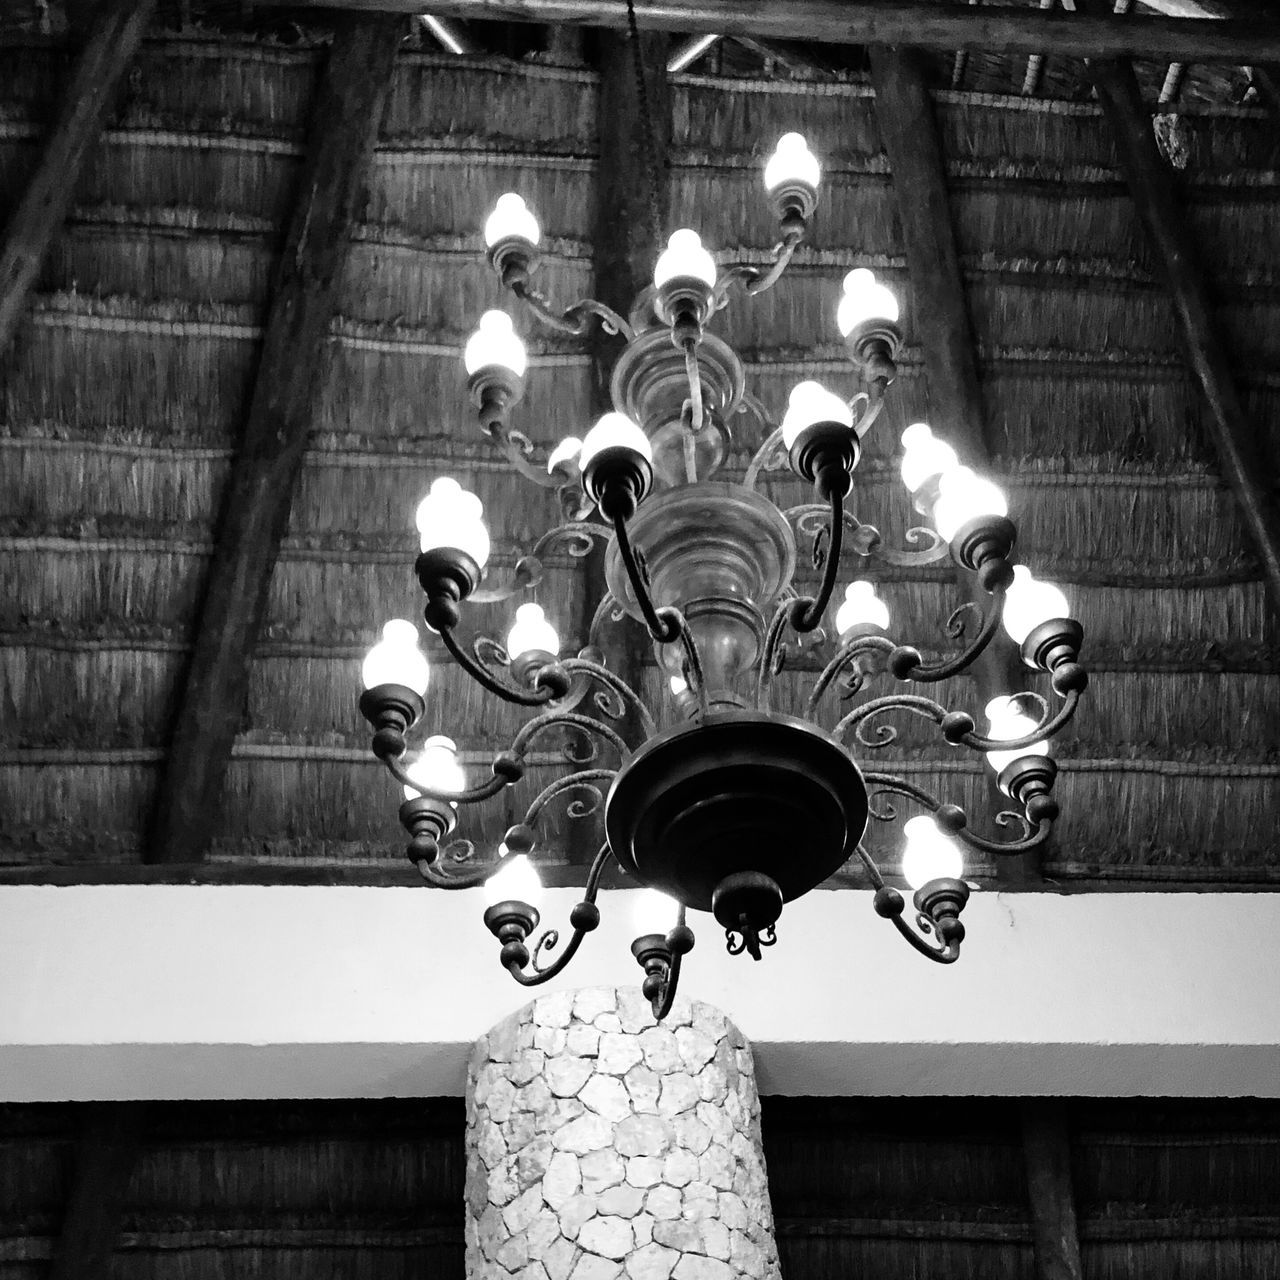 lighting equipment, illuminated, low angle view, hanging, ceiling, no people, indoors, decoration, built structure, architecture, electric lamp, glowing, light, chandelier, electricity, art and craft, electric light, pattern, pendant light, wall - building feature, ornate, light fixture